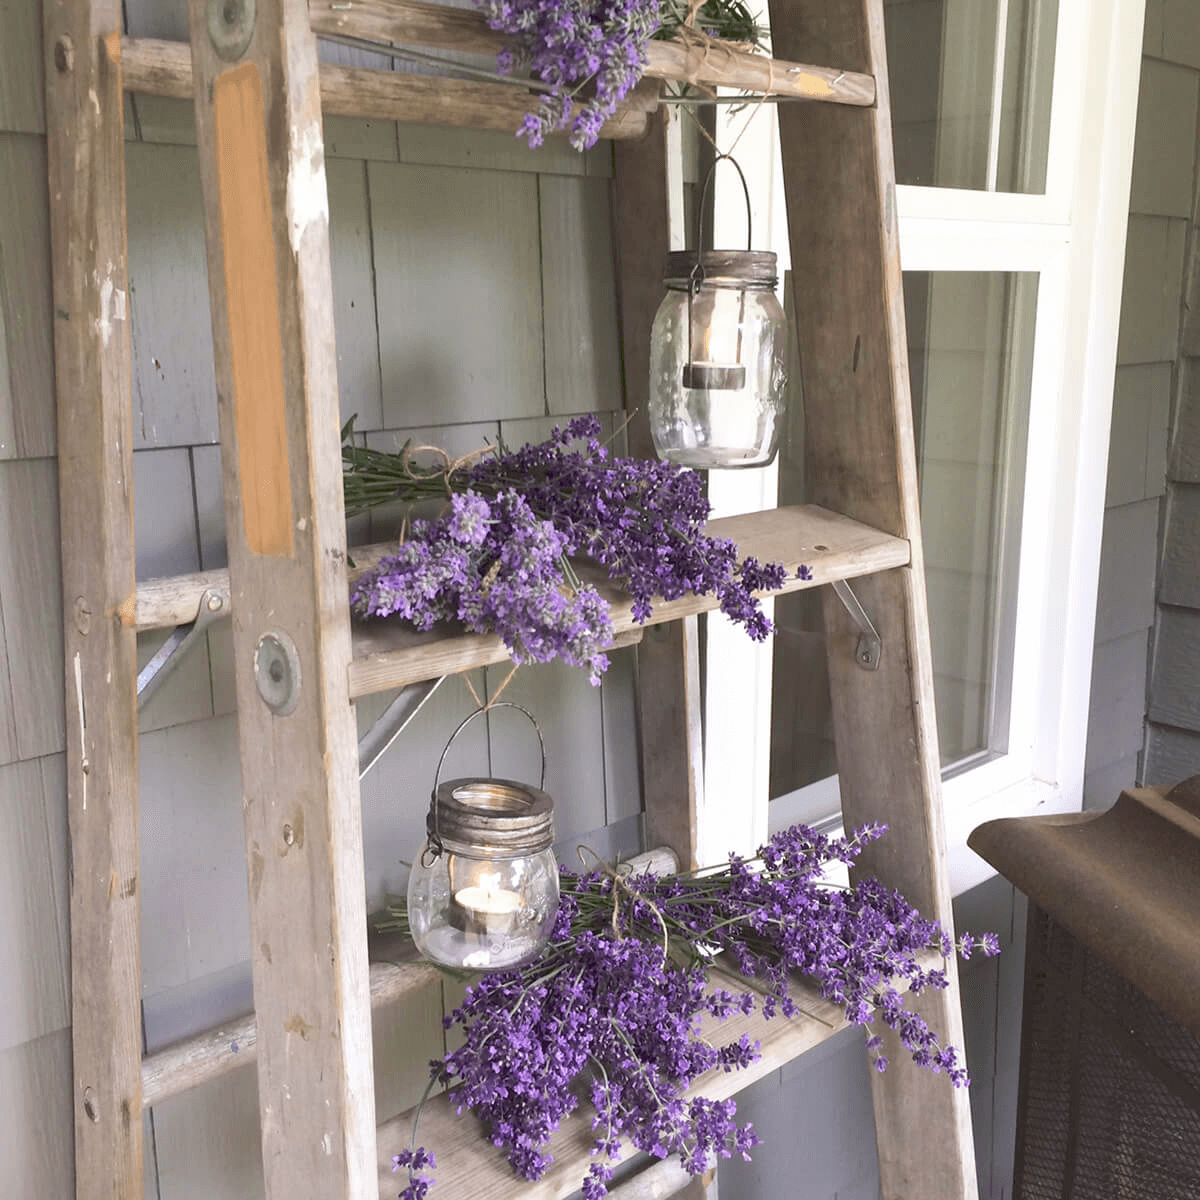 LADDER LAVENDER FARMHOUSE PORCH DECORATION IDEAS